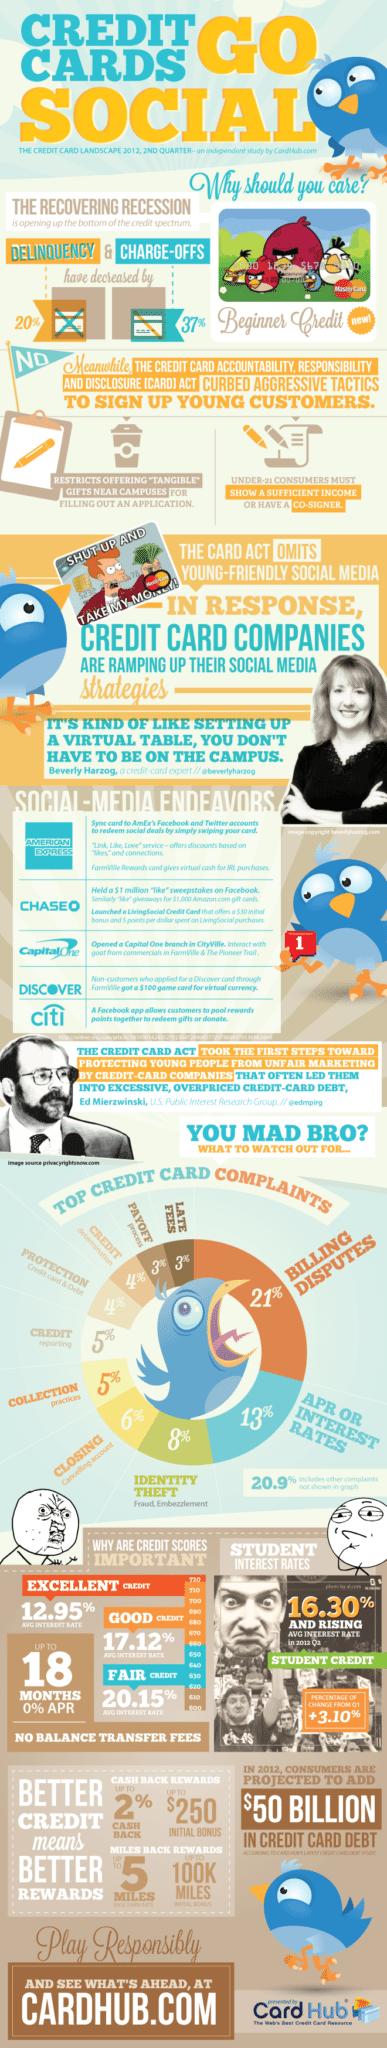 Credit Cards Social Infographic V152  Is the Swag Worth the Debt?